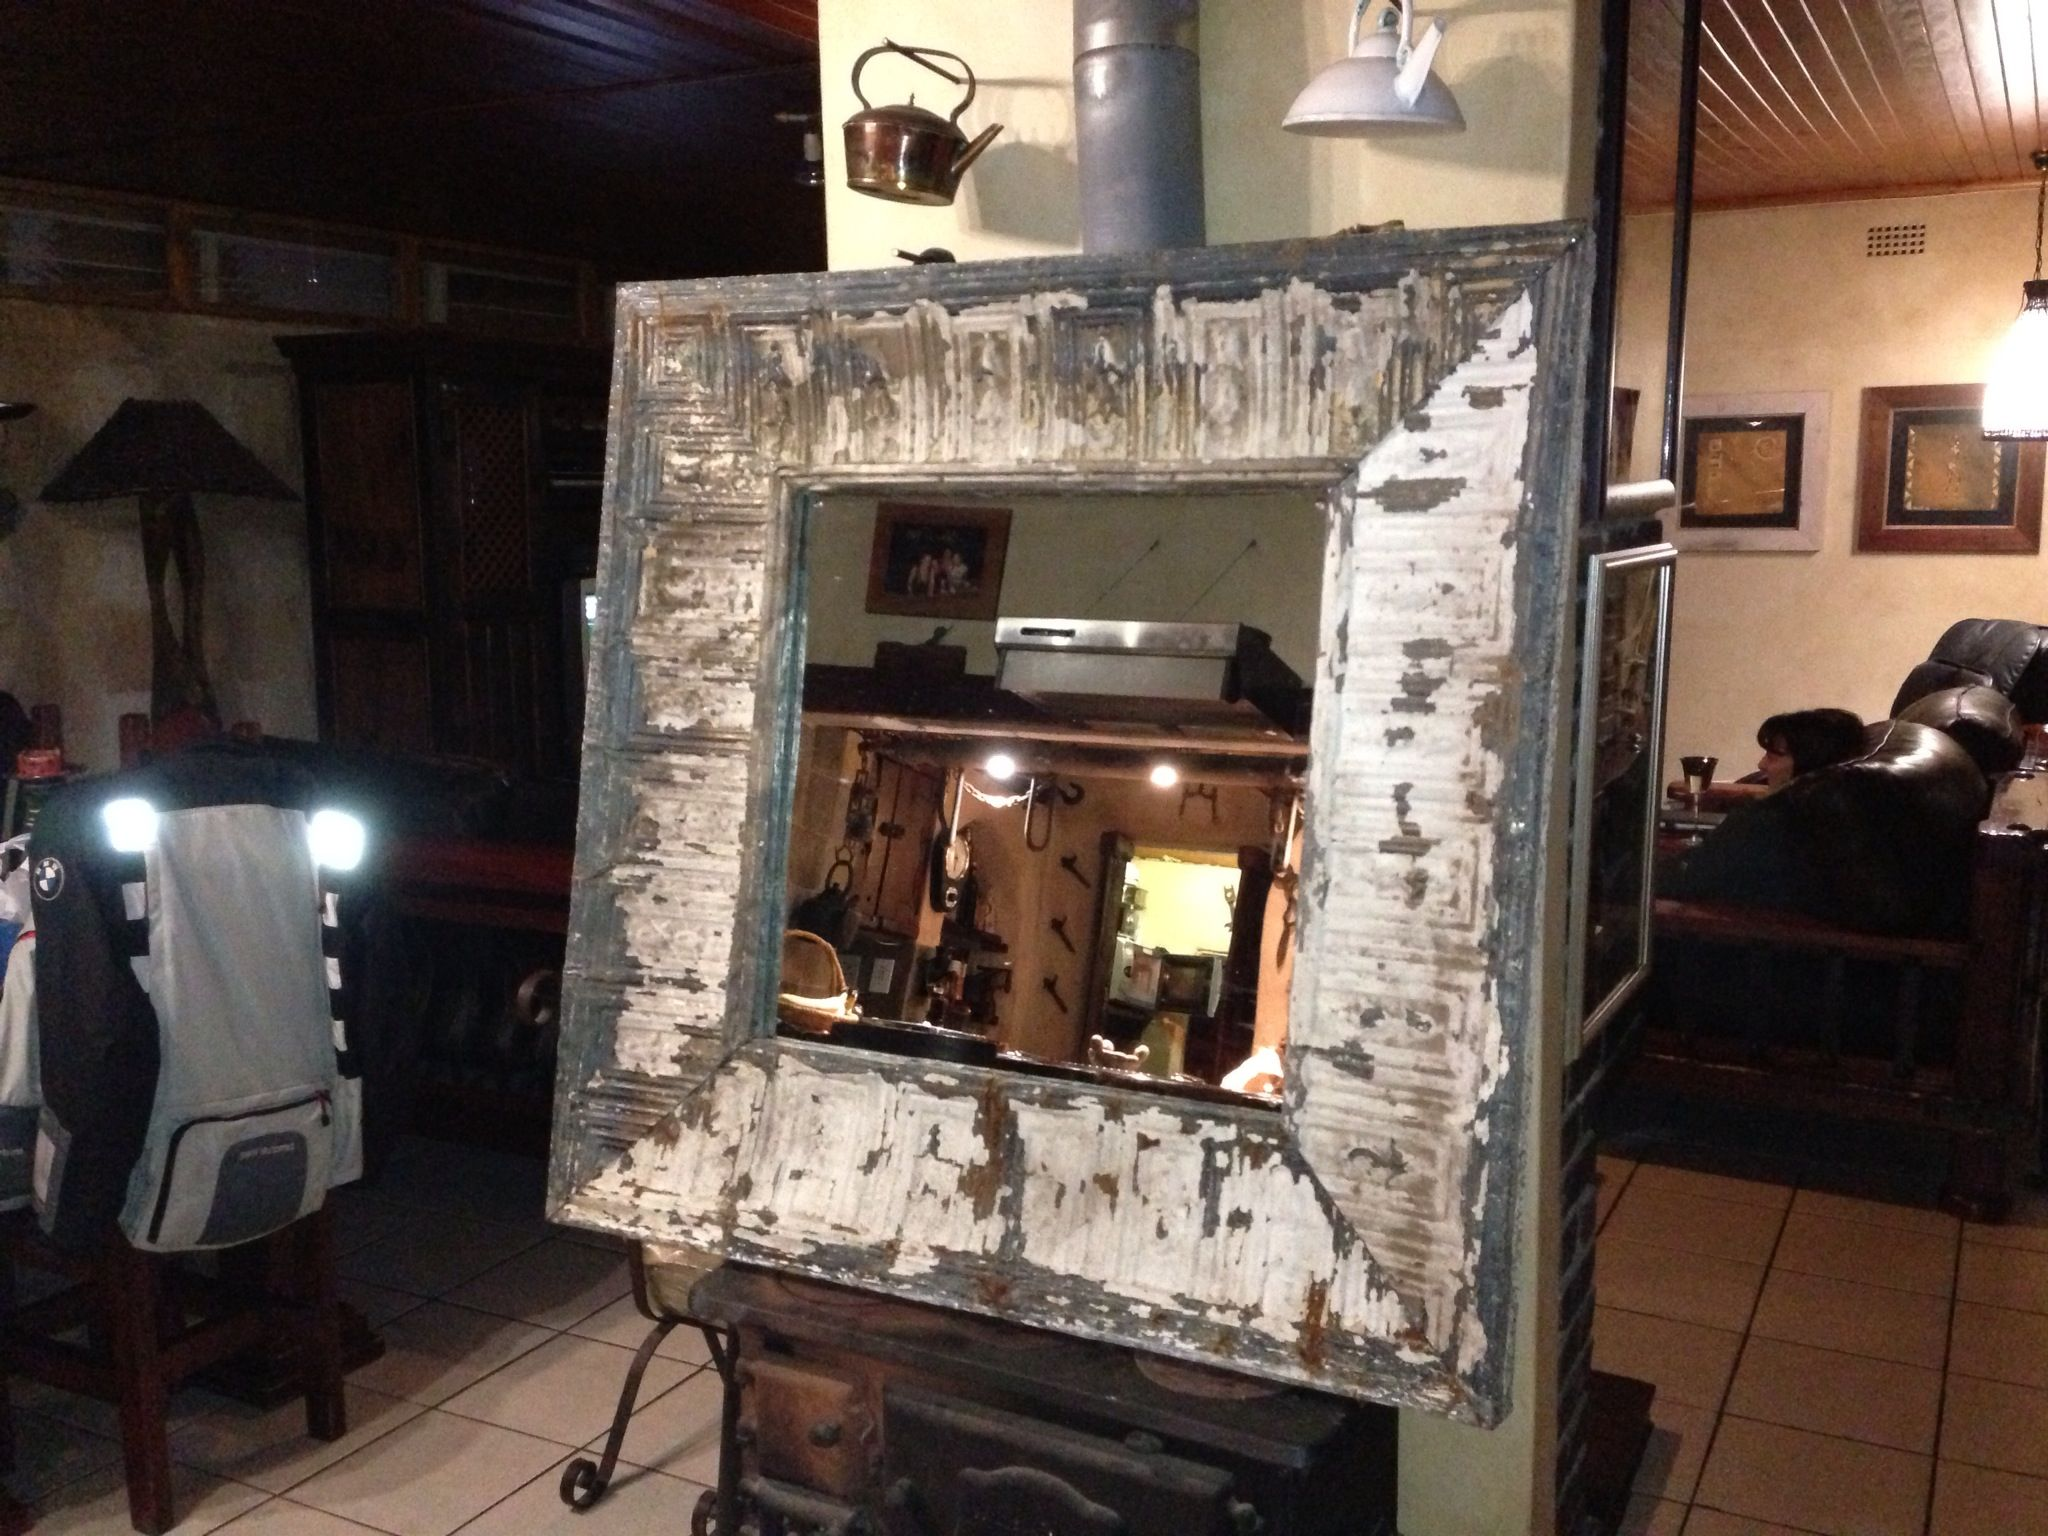 pressed ceiling mirror for sale in south africa for r 3500